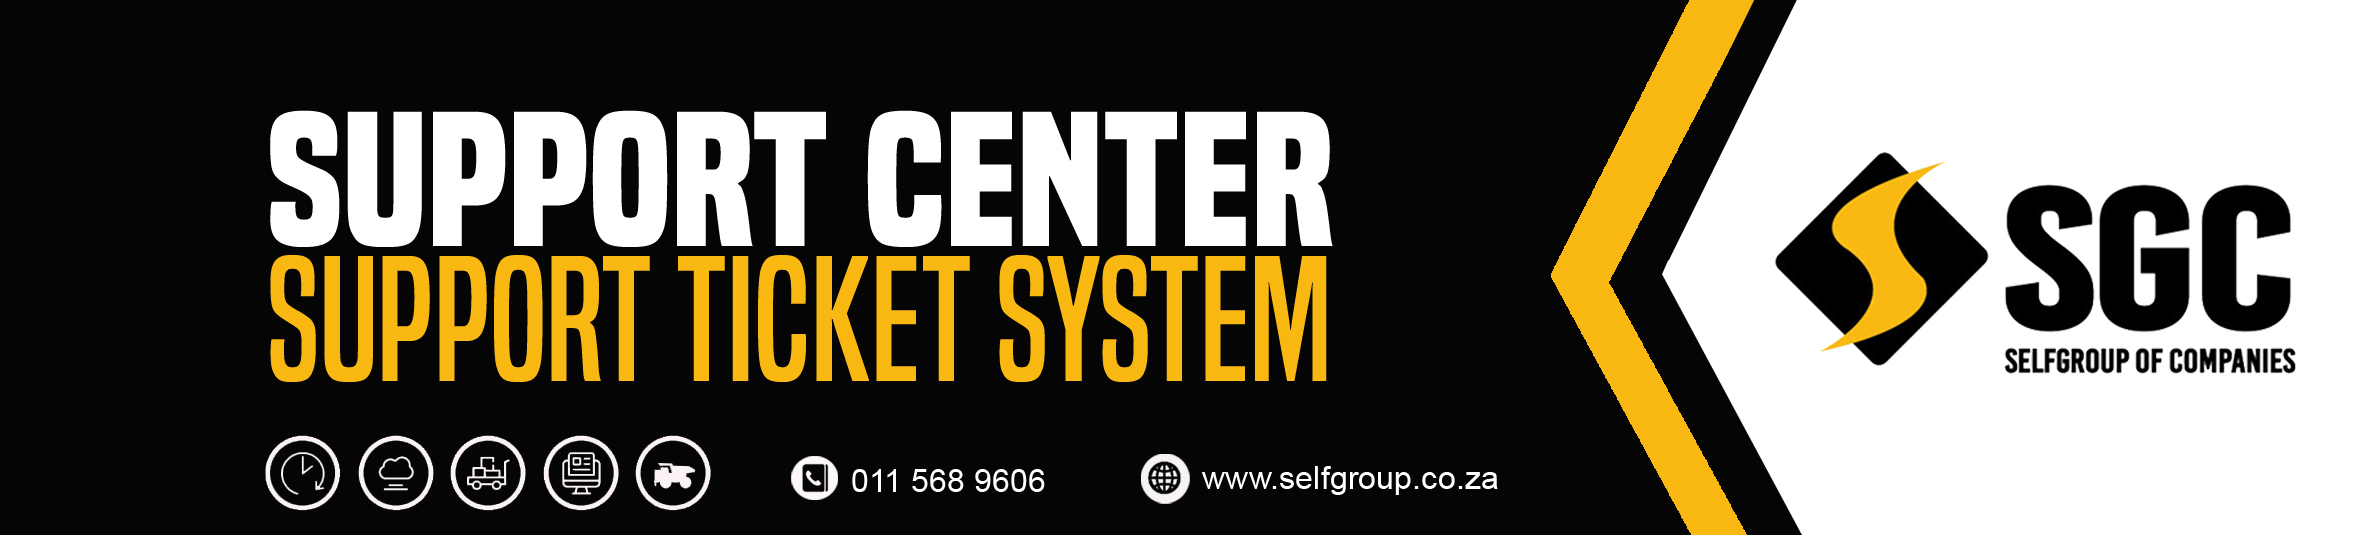 Self Group Support Centre